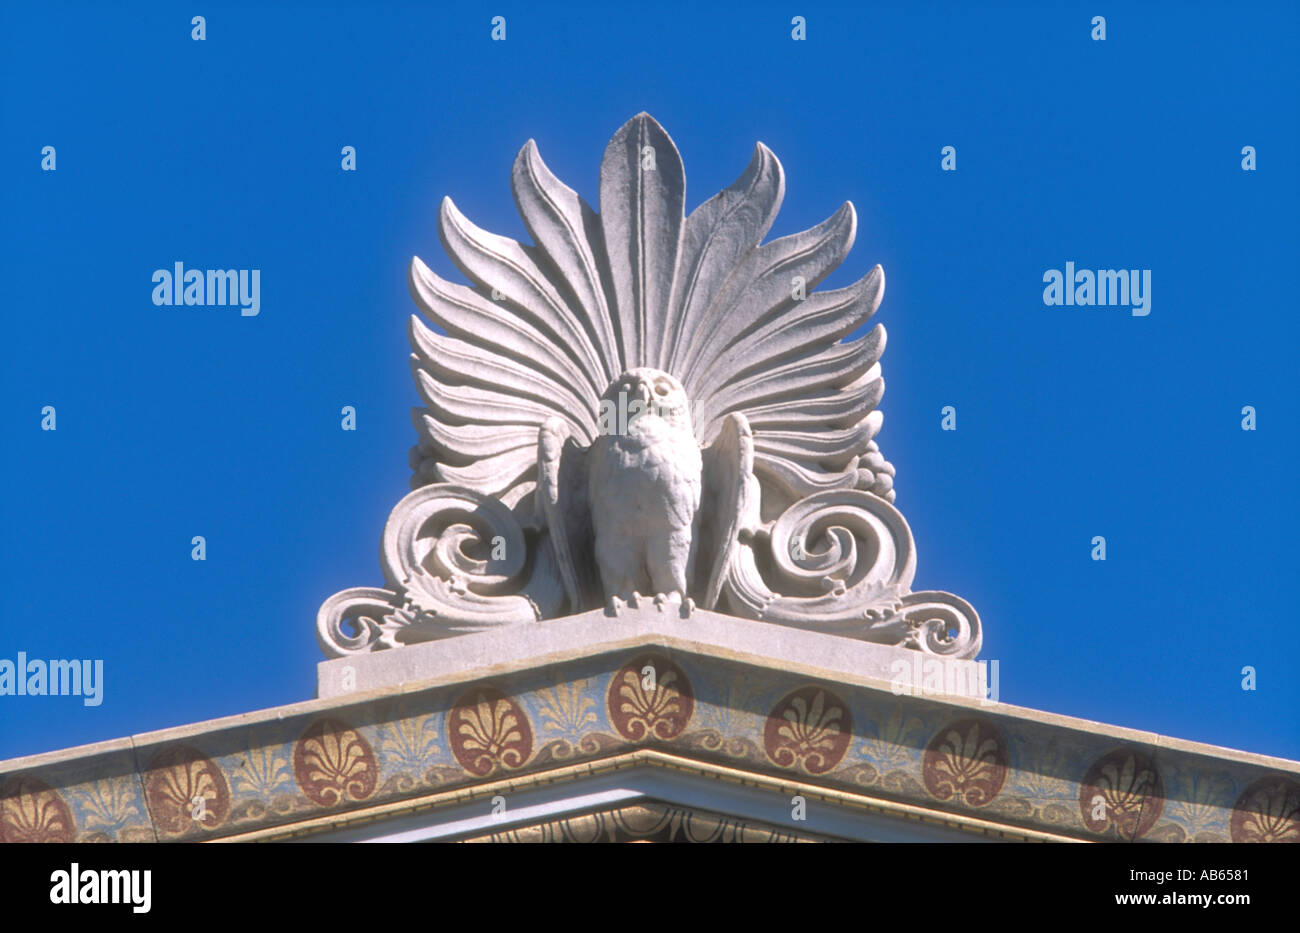 An Athenian owl with acanthus acroterion on a pediment of the Academy of Athens, Athens, Greece. - Stock Image